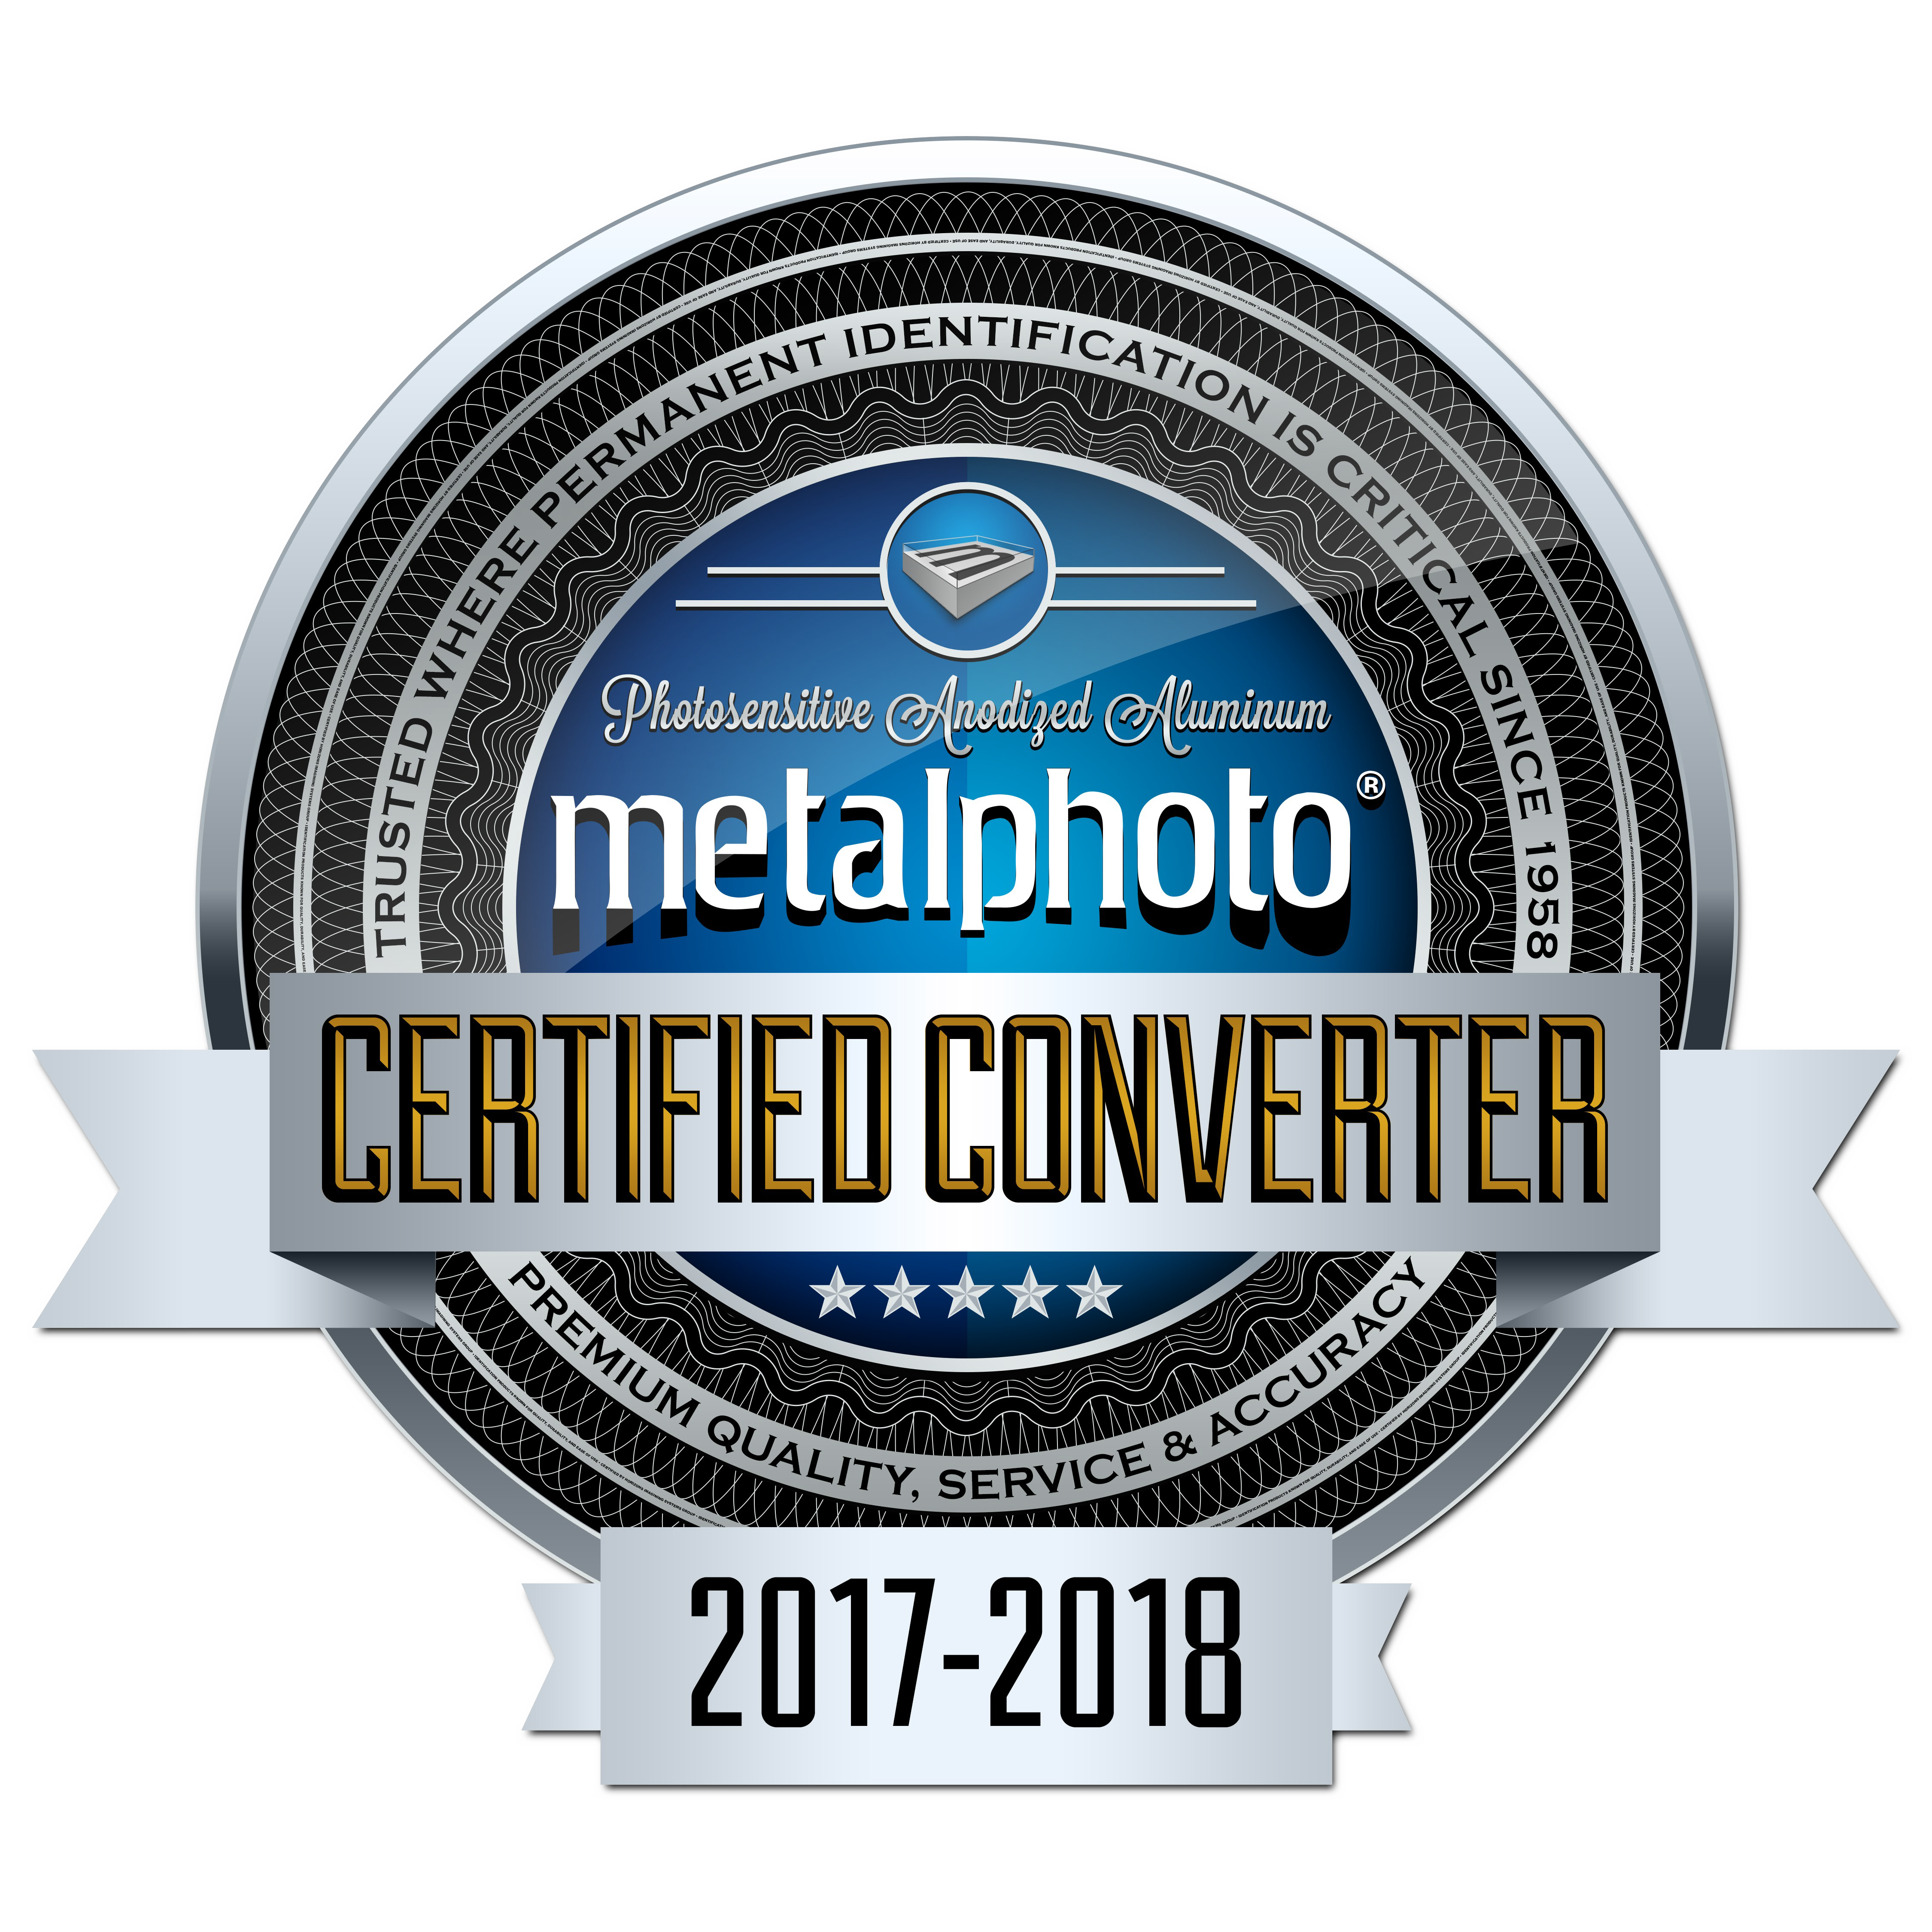 QNP is a Metalphoto Certified Converter - Boat Capacity Plates